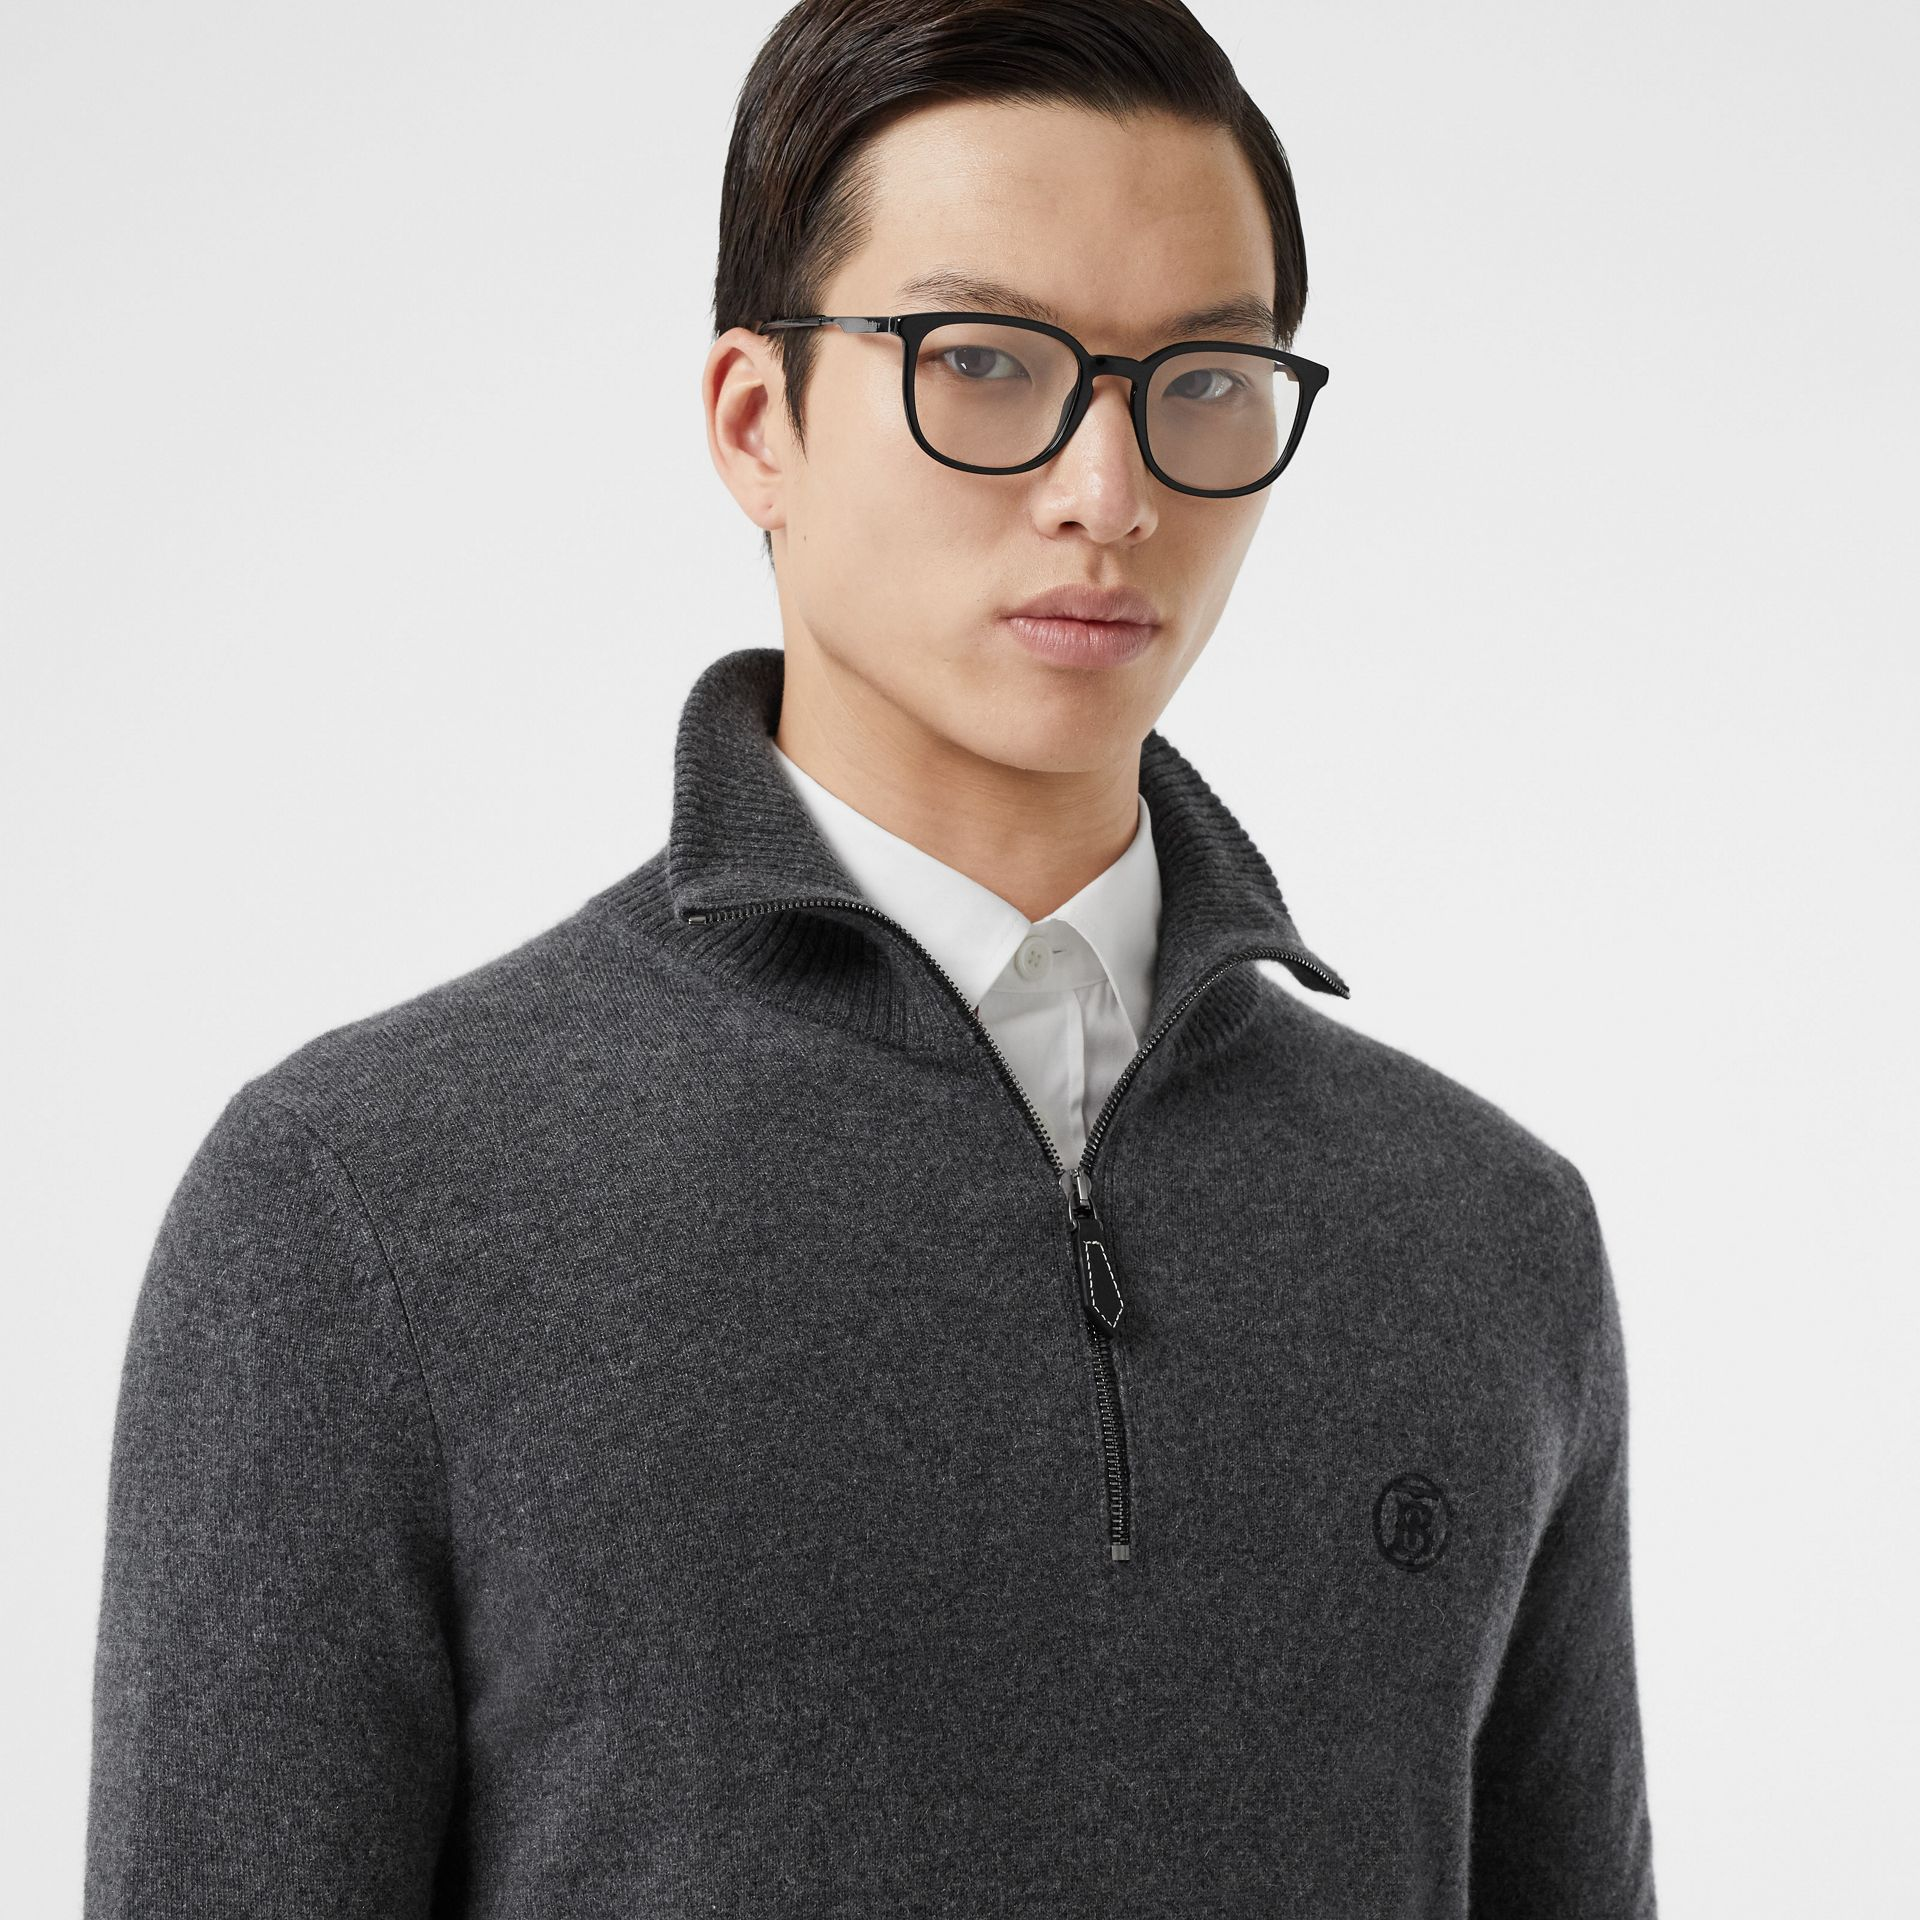 Monogram Motif Cashmere Funnel Neck Sweater in Steel Grey - Men | Burberry - gallery image 1